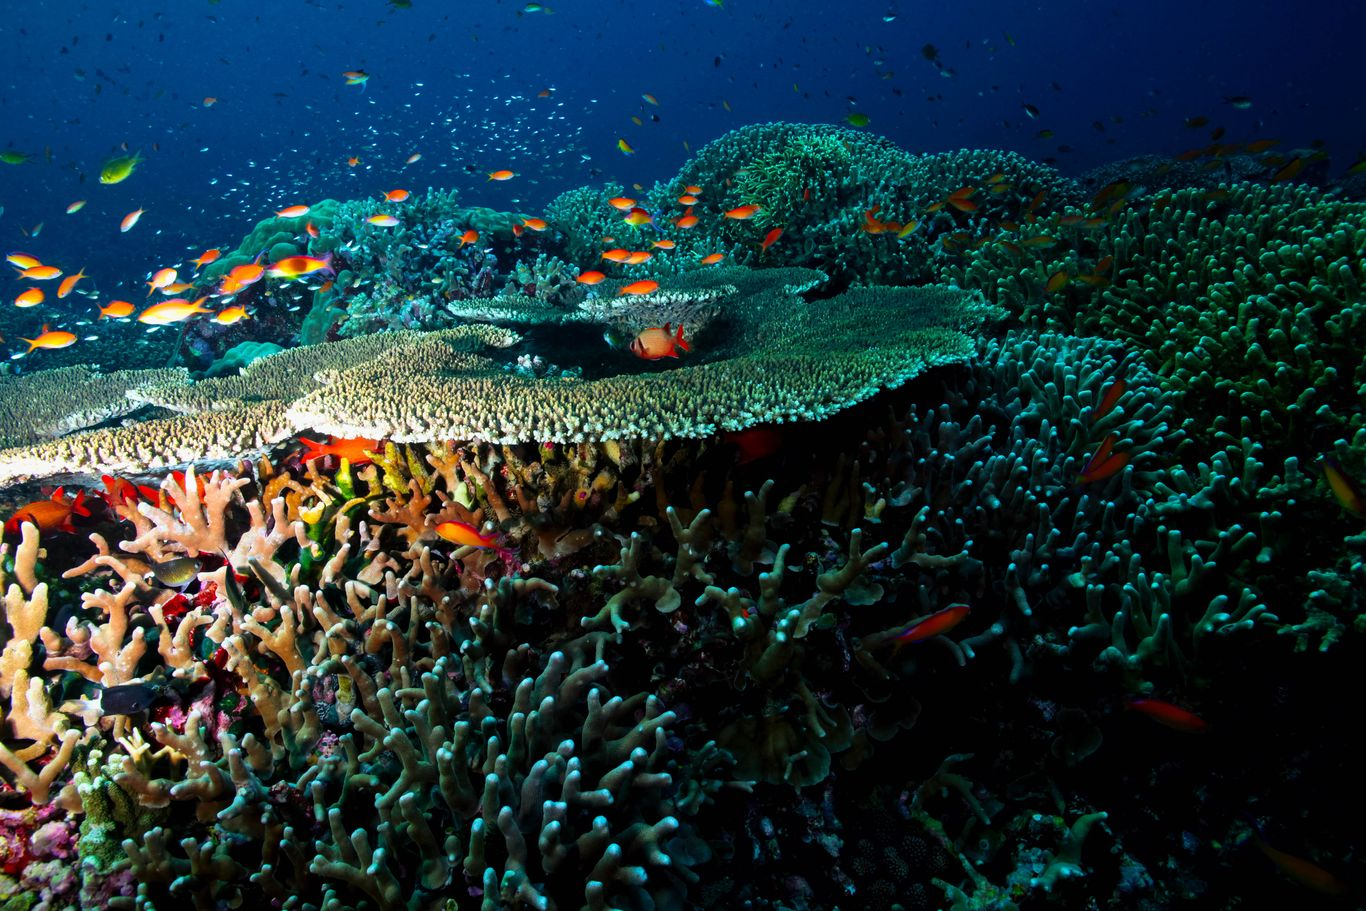 Schools of colorful reef fishes flit in and out of the equally colorful coral reefs in the Tubbataha Reefs Natural Park, one of the UNESCO World Heritage Sites in the Philippines